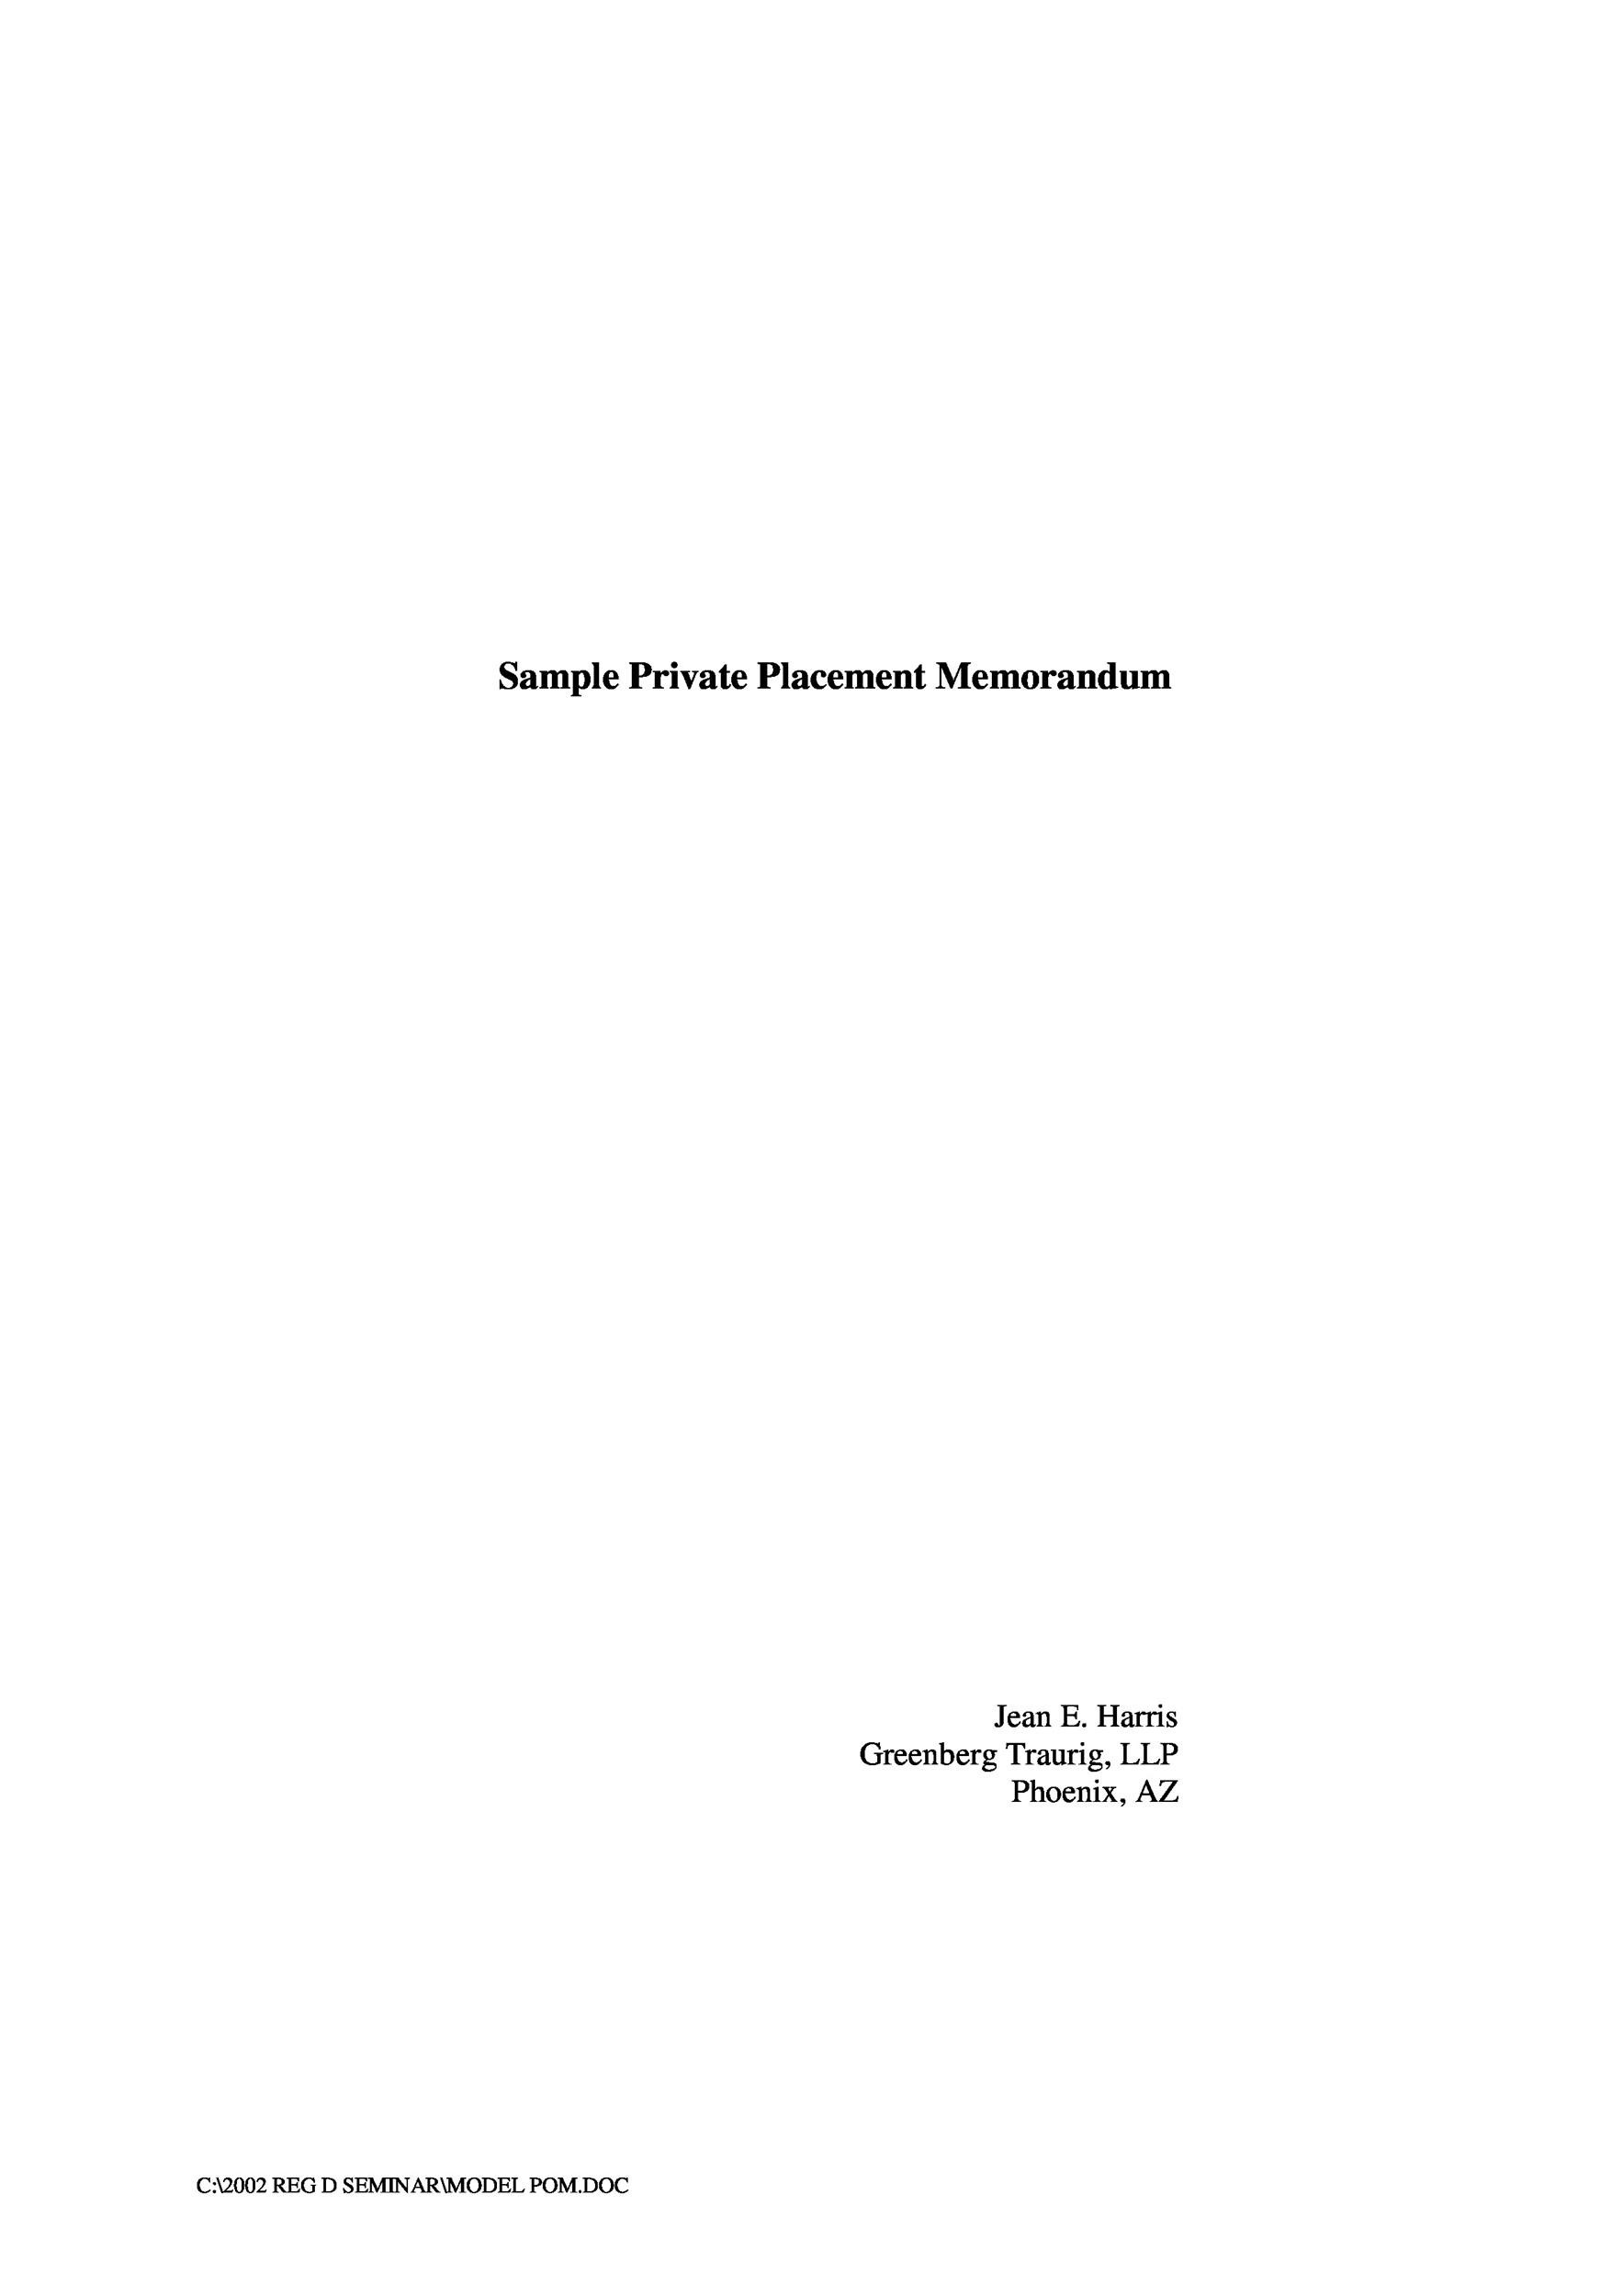 40 Private Placement Memorandum Templates Word PDF – Decision Memo Template